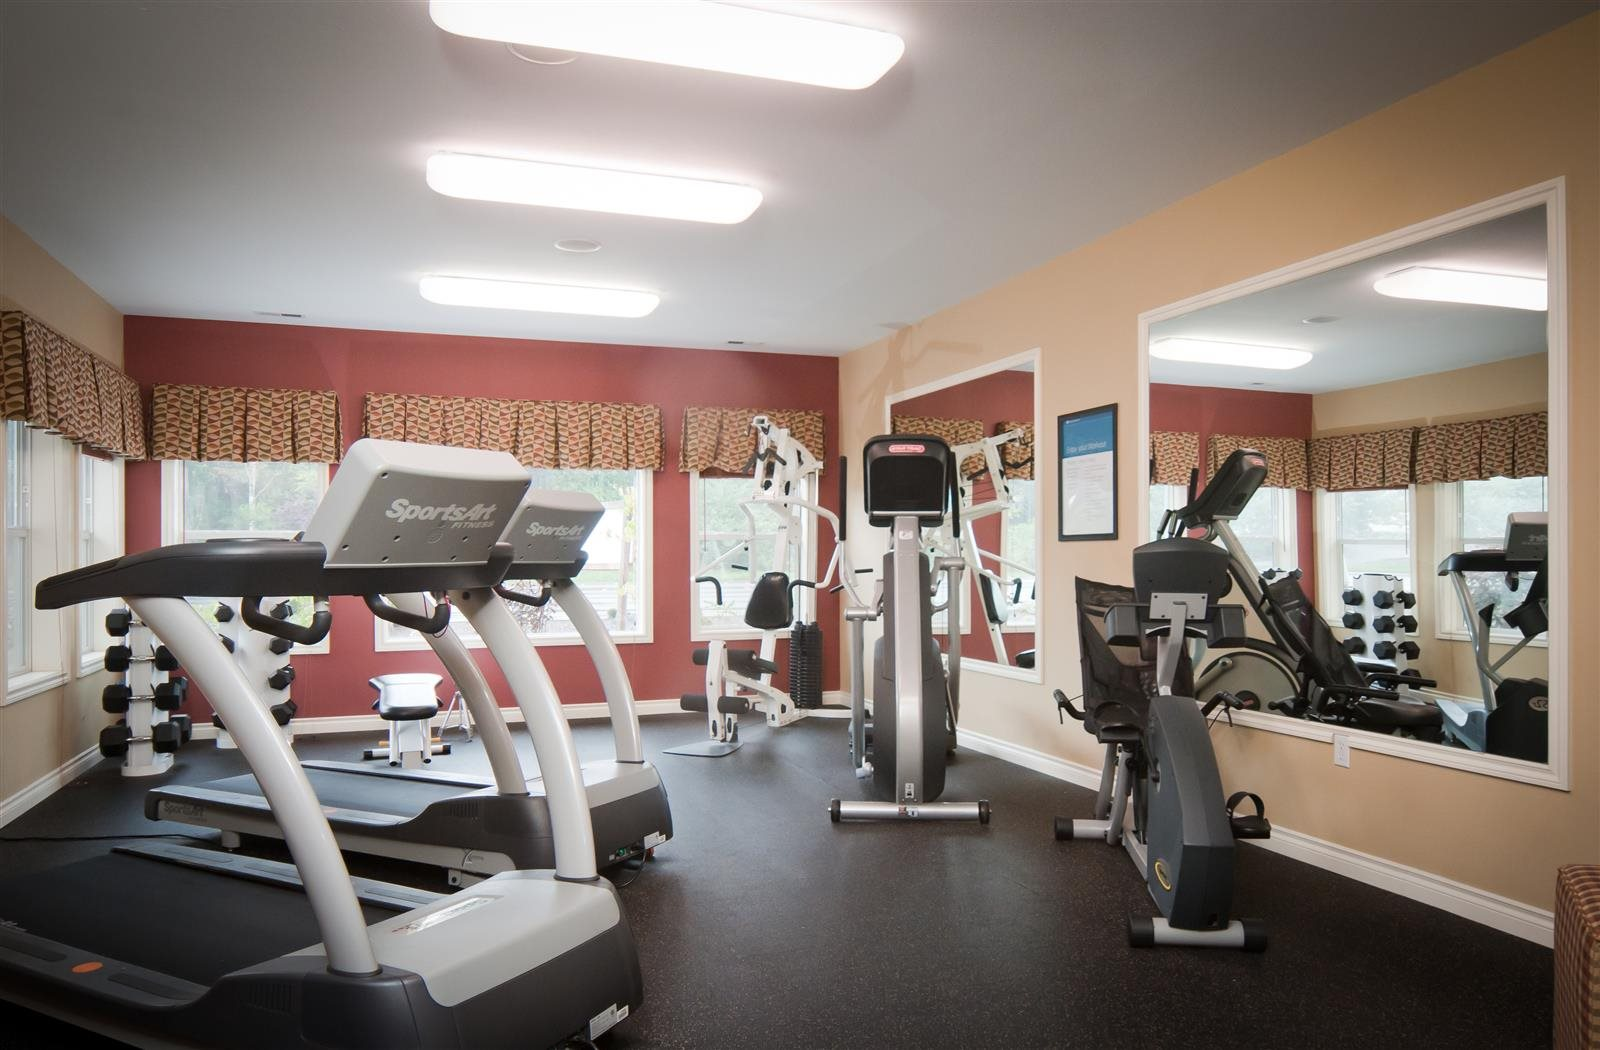 Fully Equipped Fitness center at Sage Apartments, Everett, WA, 98204